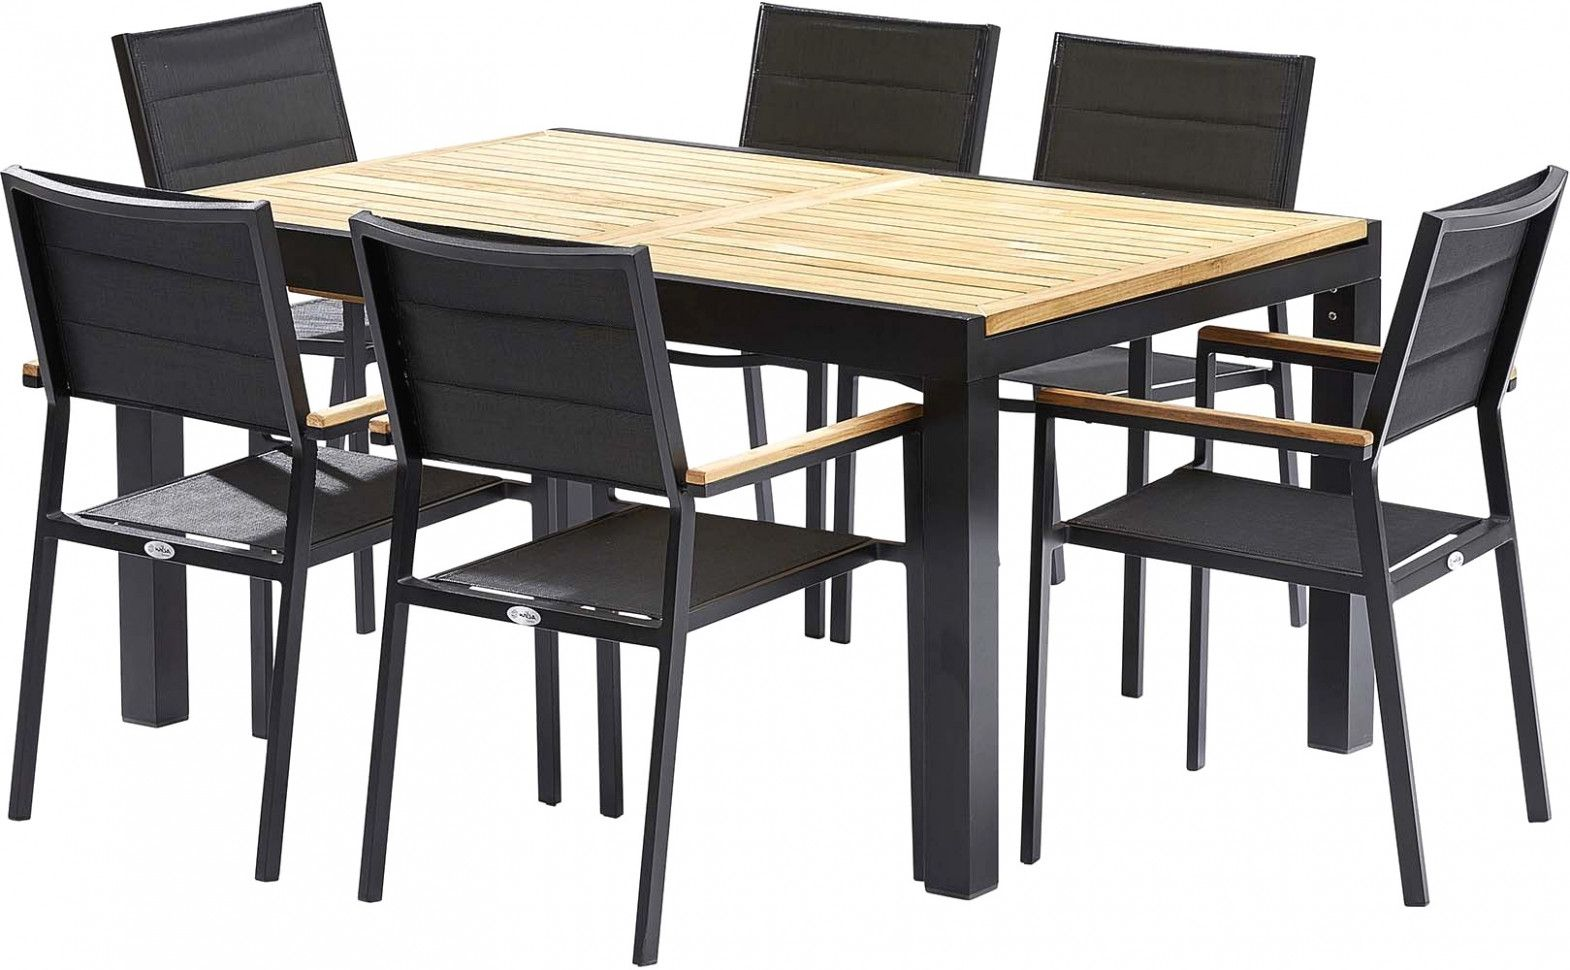 Table De Jardin Bricorama Issu D Une Famille Modeste Jean Claude Bourrelier Voit Le Jour Le 16 Aout 1946 A Saint Calai Table Outdoor Furniture Sets Home Decor